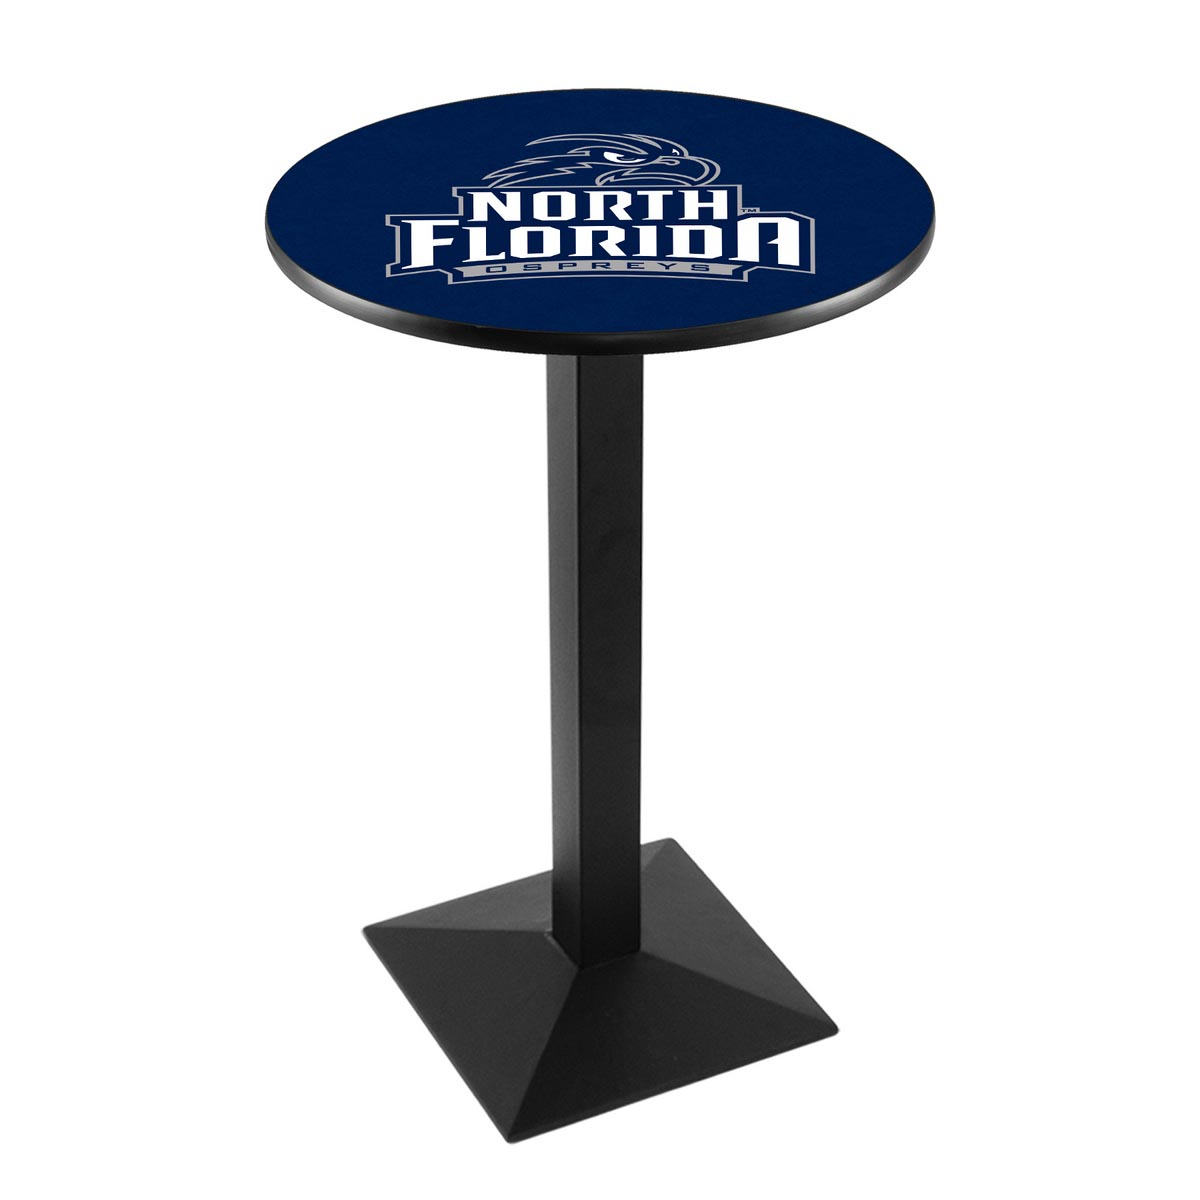 Cheap University North Florida Logo Pub Bar Table Square Stand Product Photo